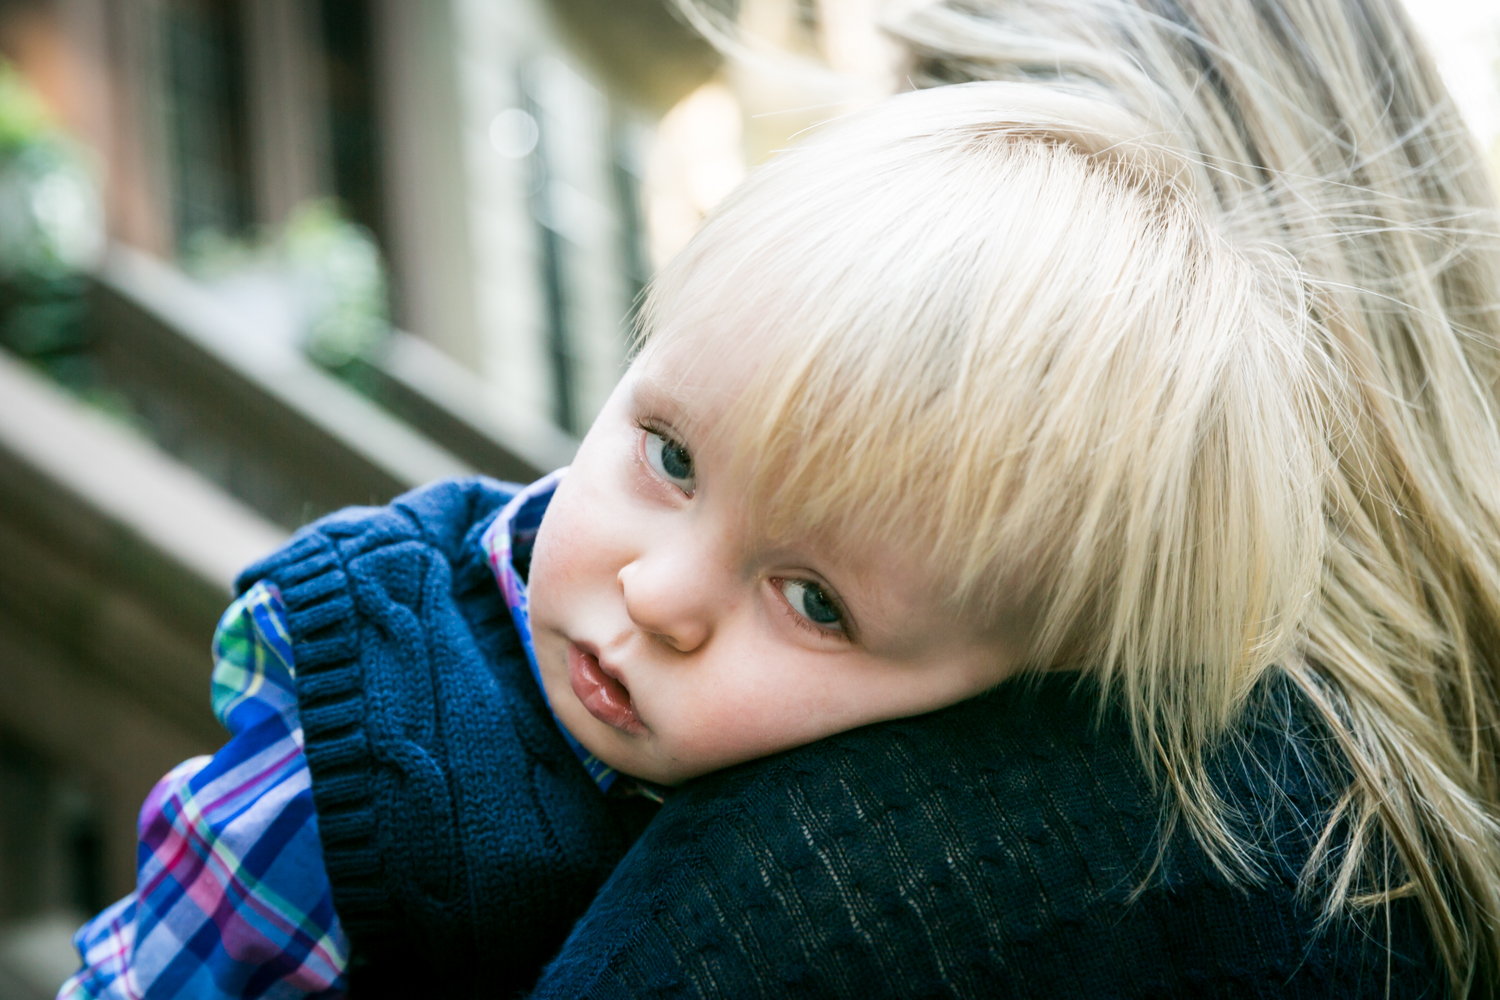 Central Park family photos of little blond boy looking ill